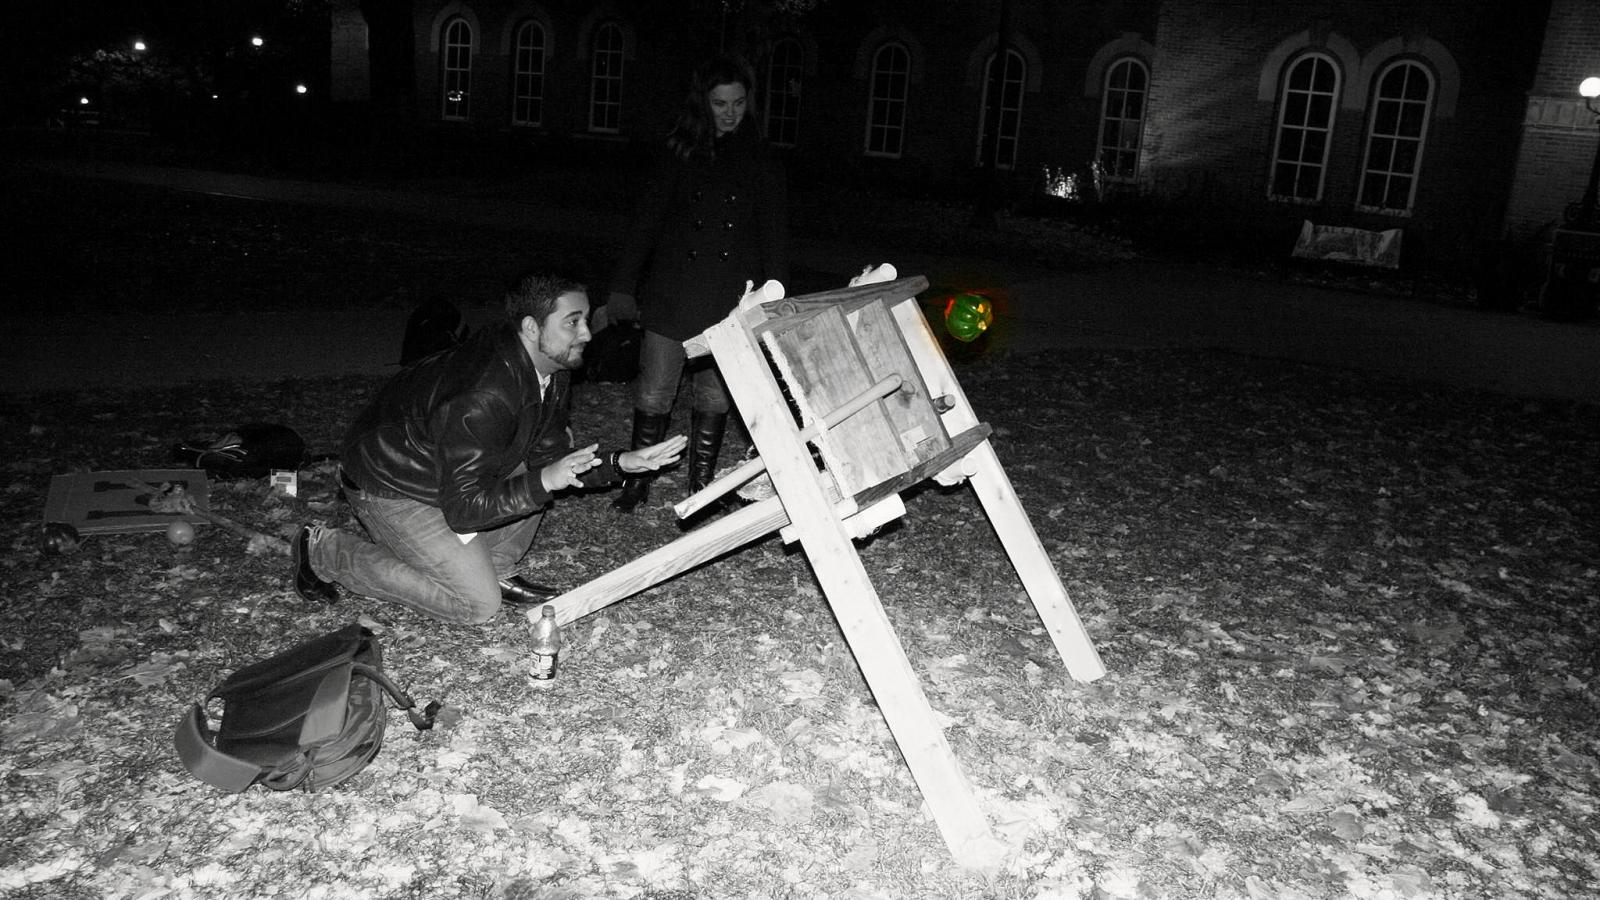 Ballista Demonstration Photo 4